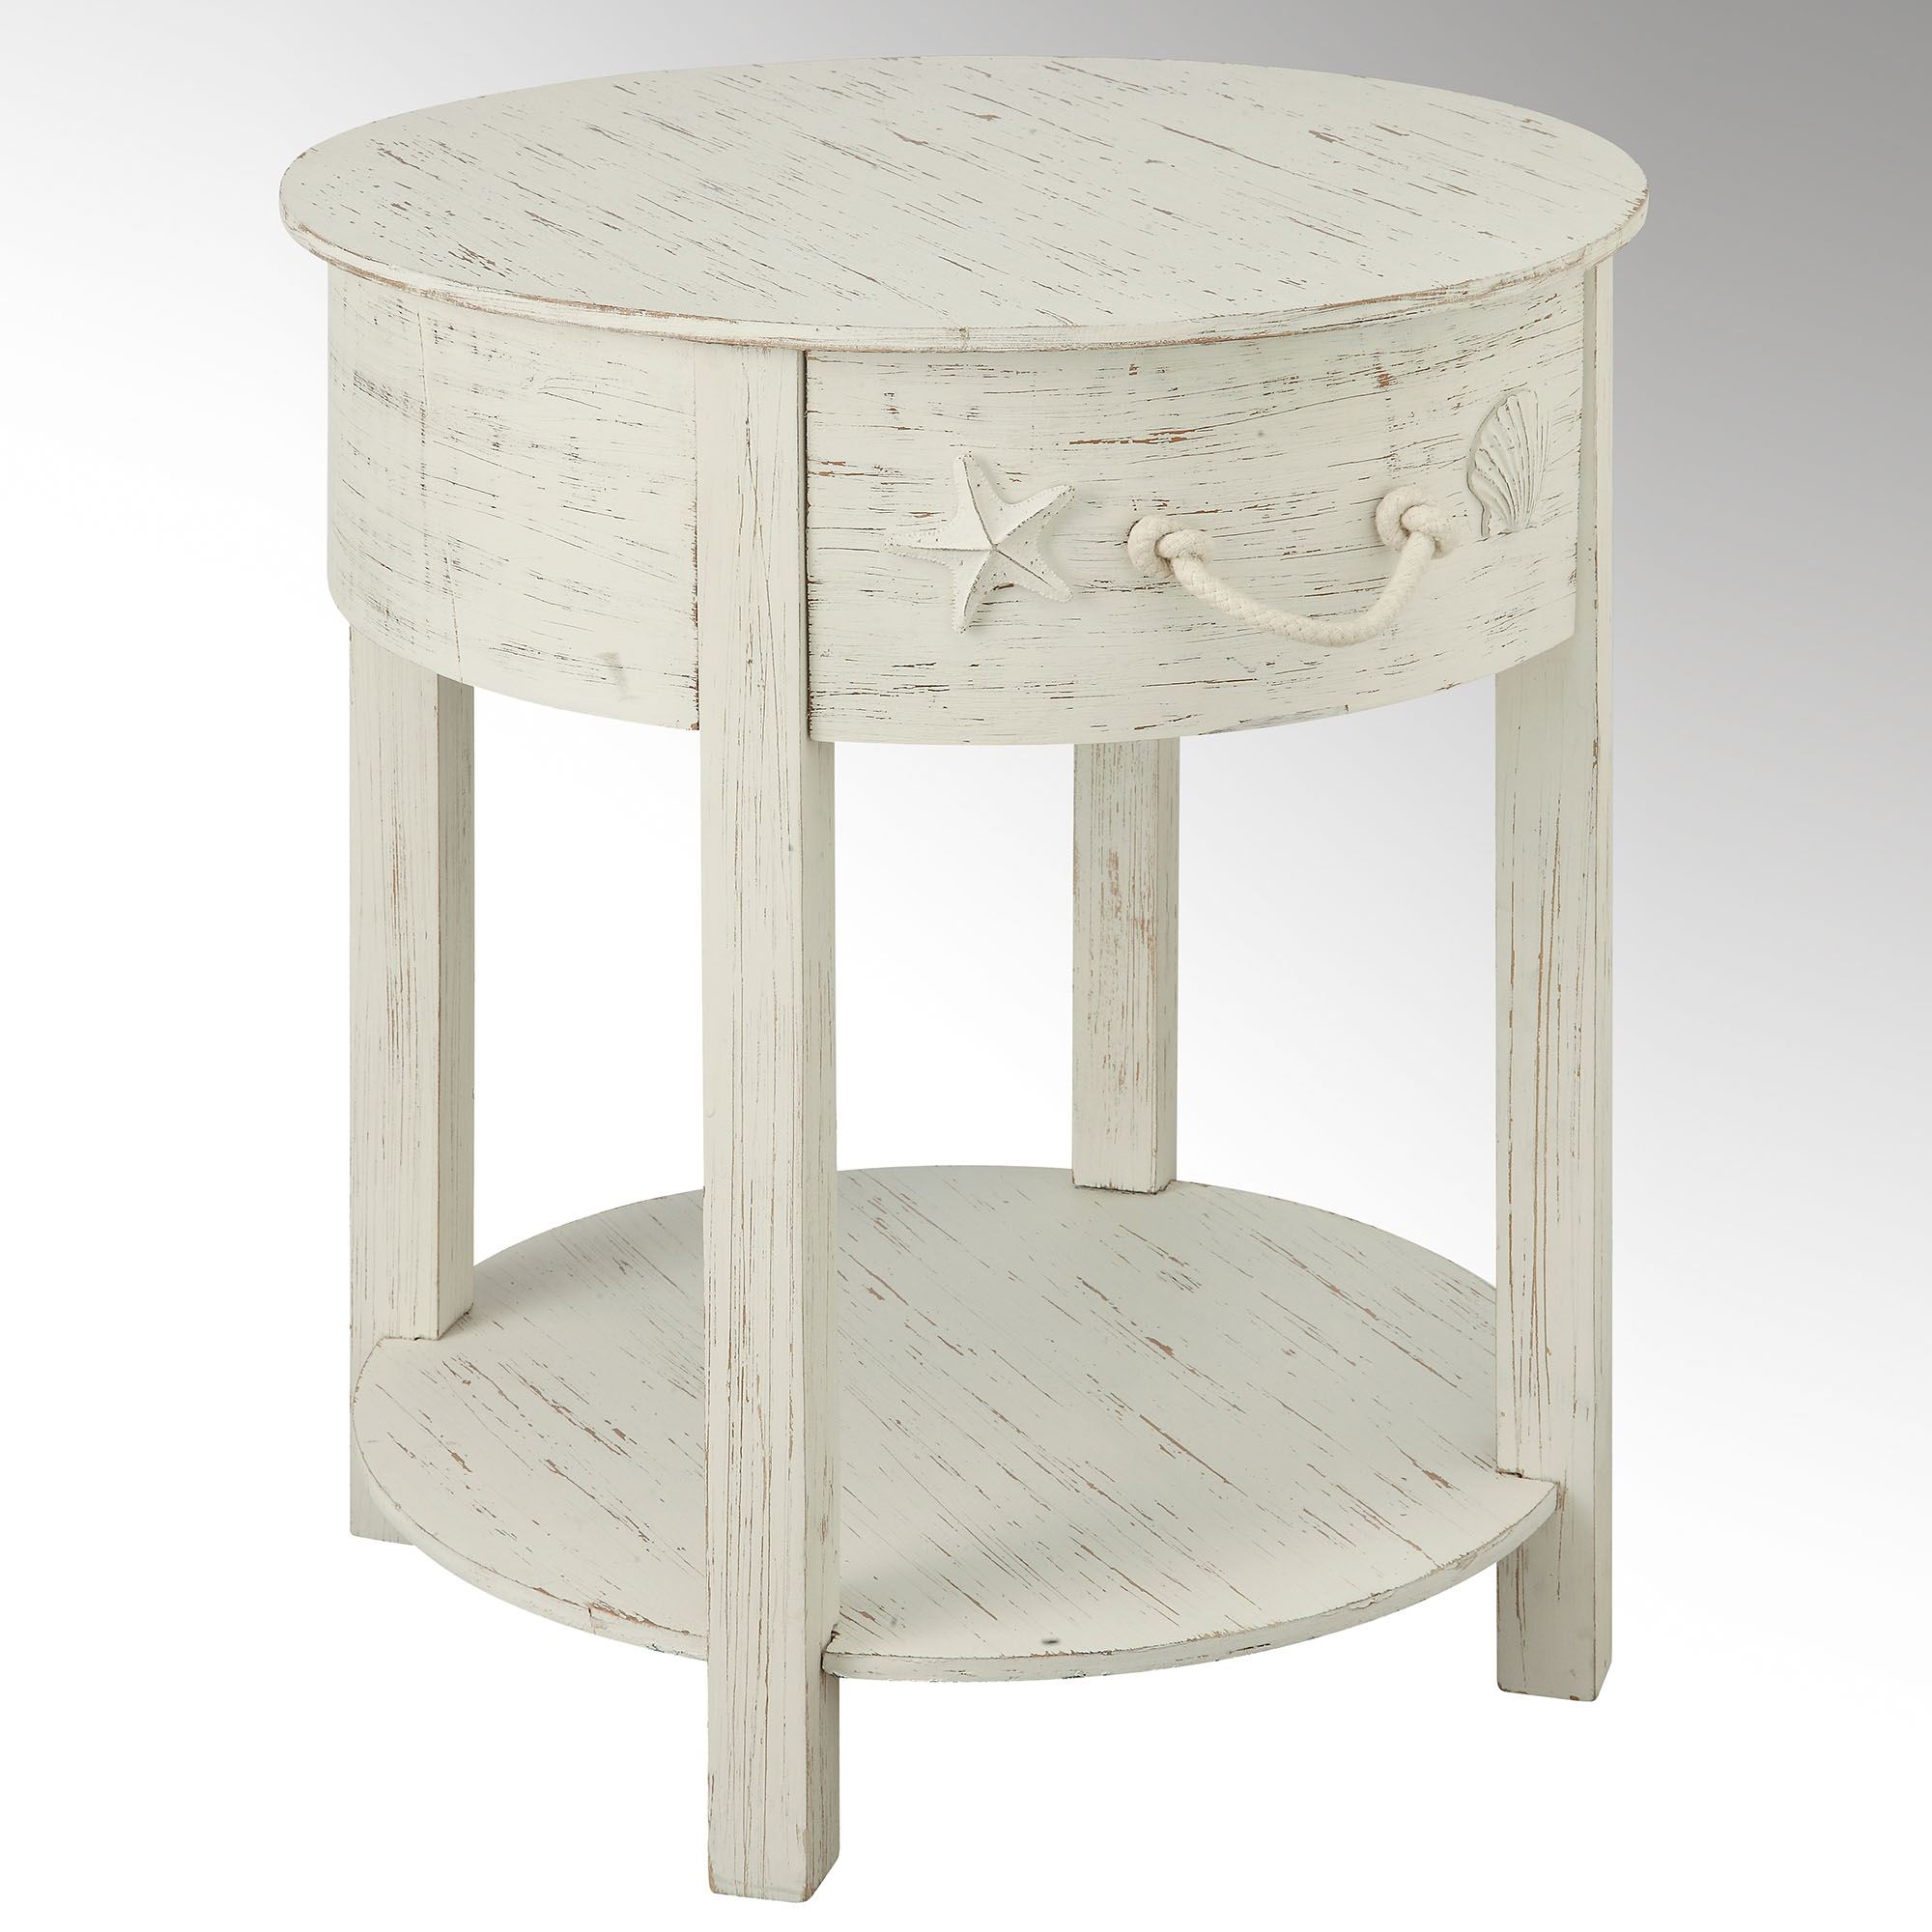 harbor main distressed white coastal accent table round with screw legs small entryway cabinet ludwig drum set floor threshold transitions retro nest tables pottery barn black